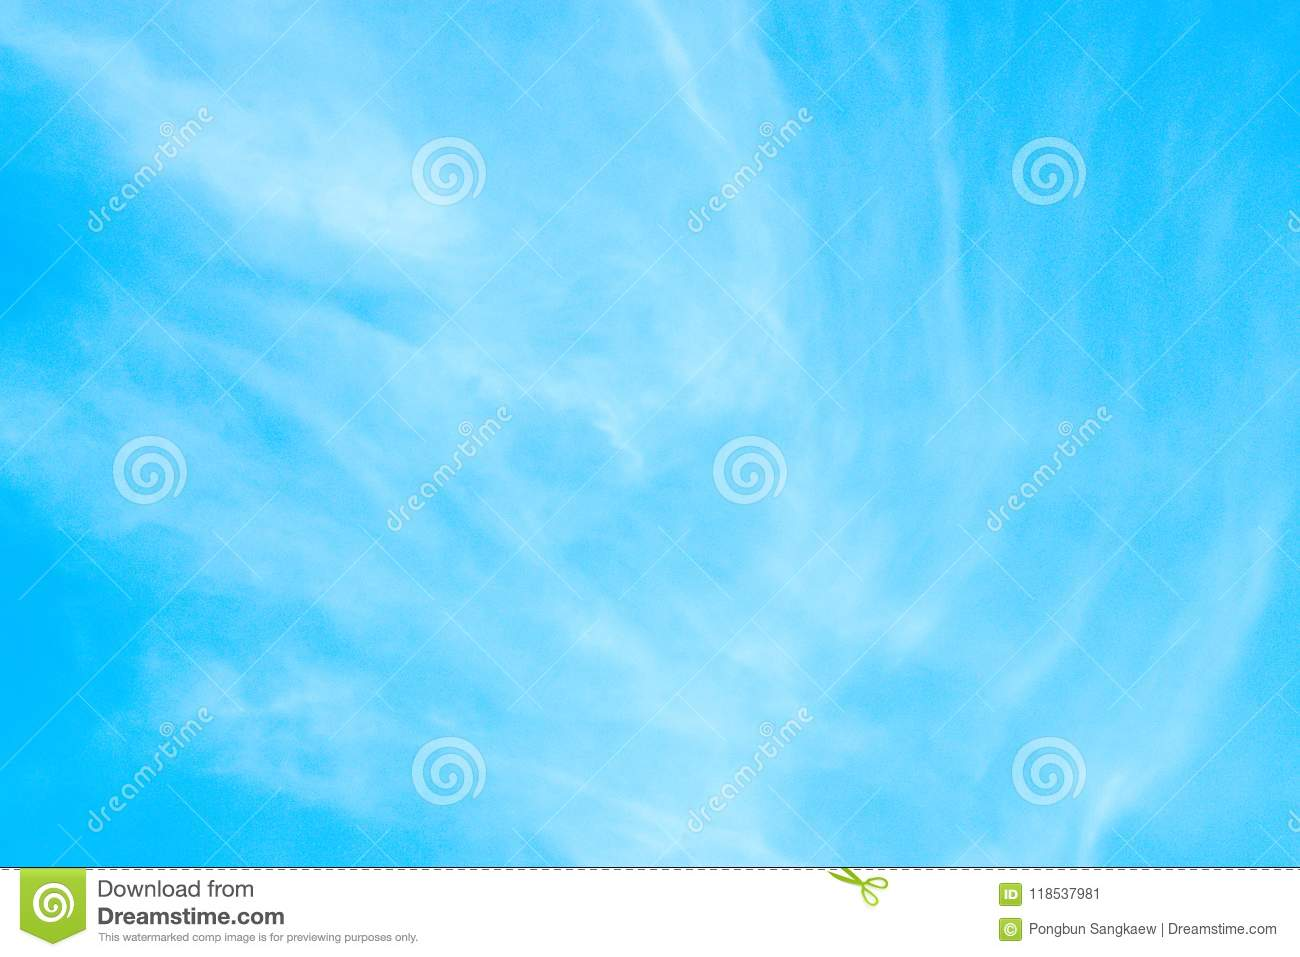 Light Blue Sky Peacful And Relax Nature Background Stock Image